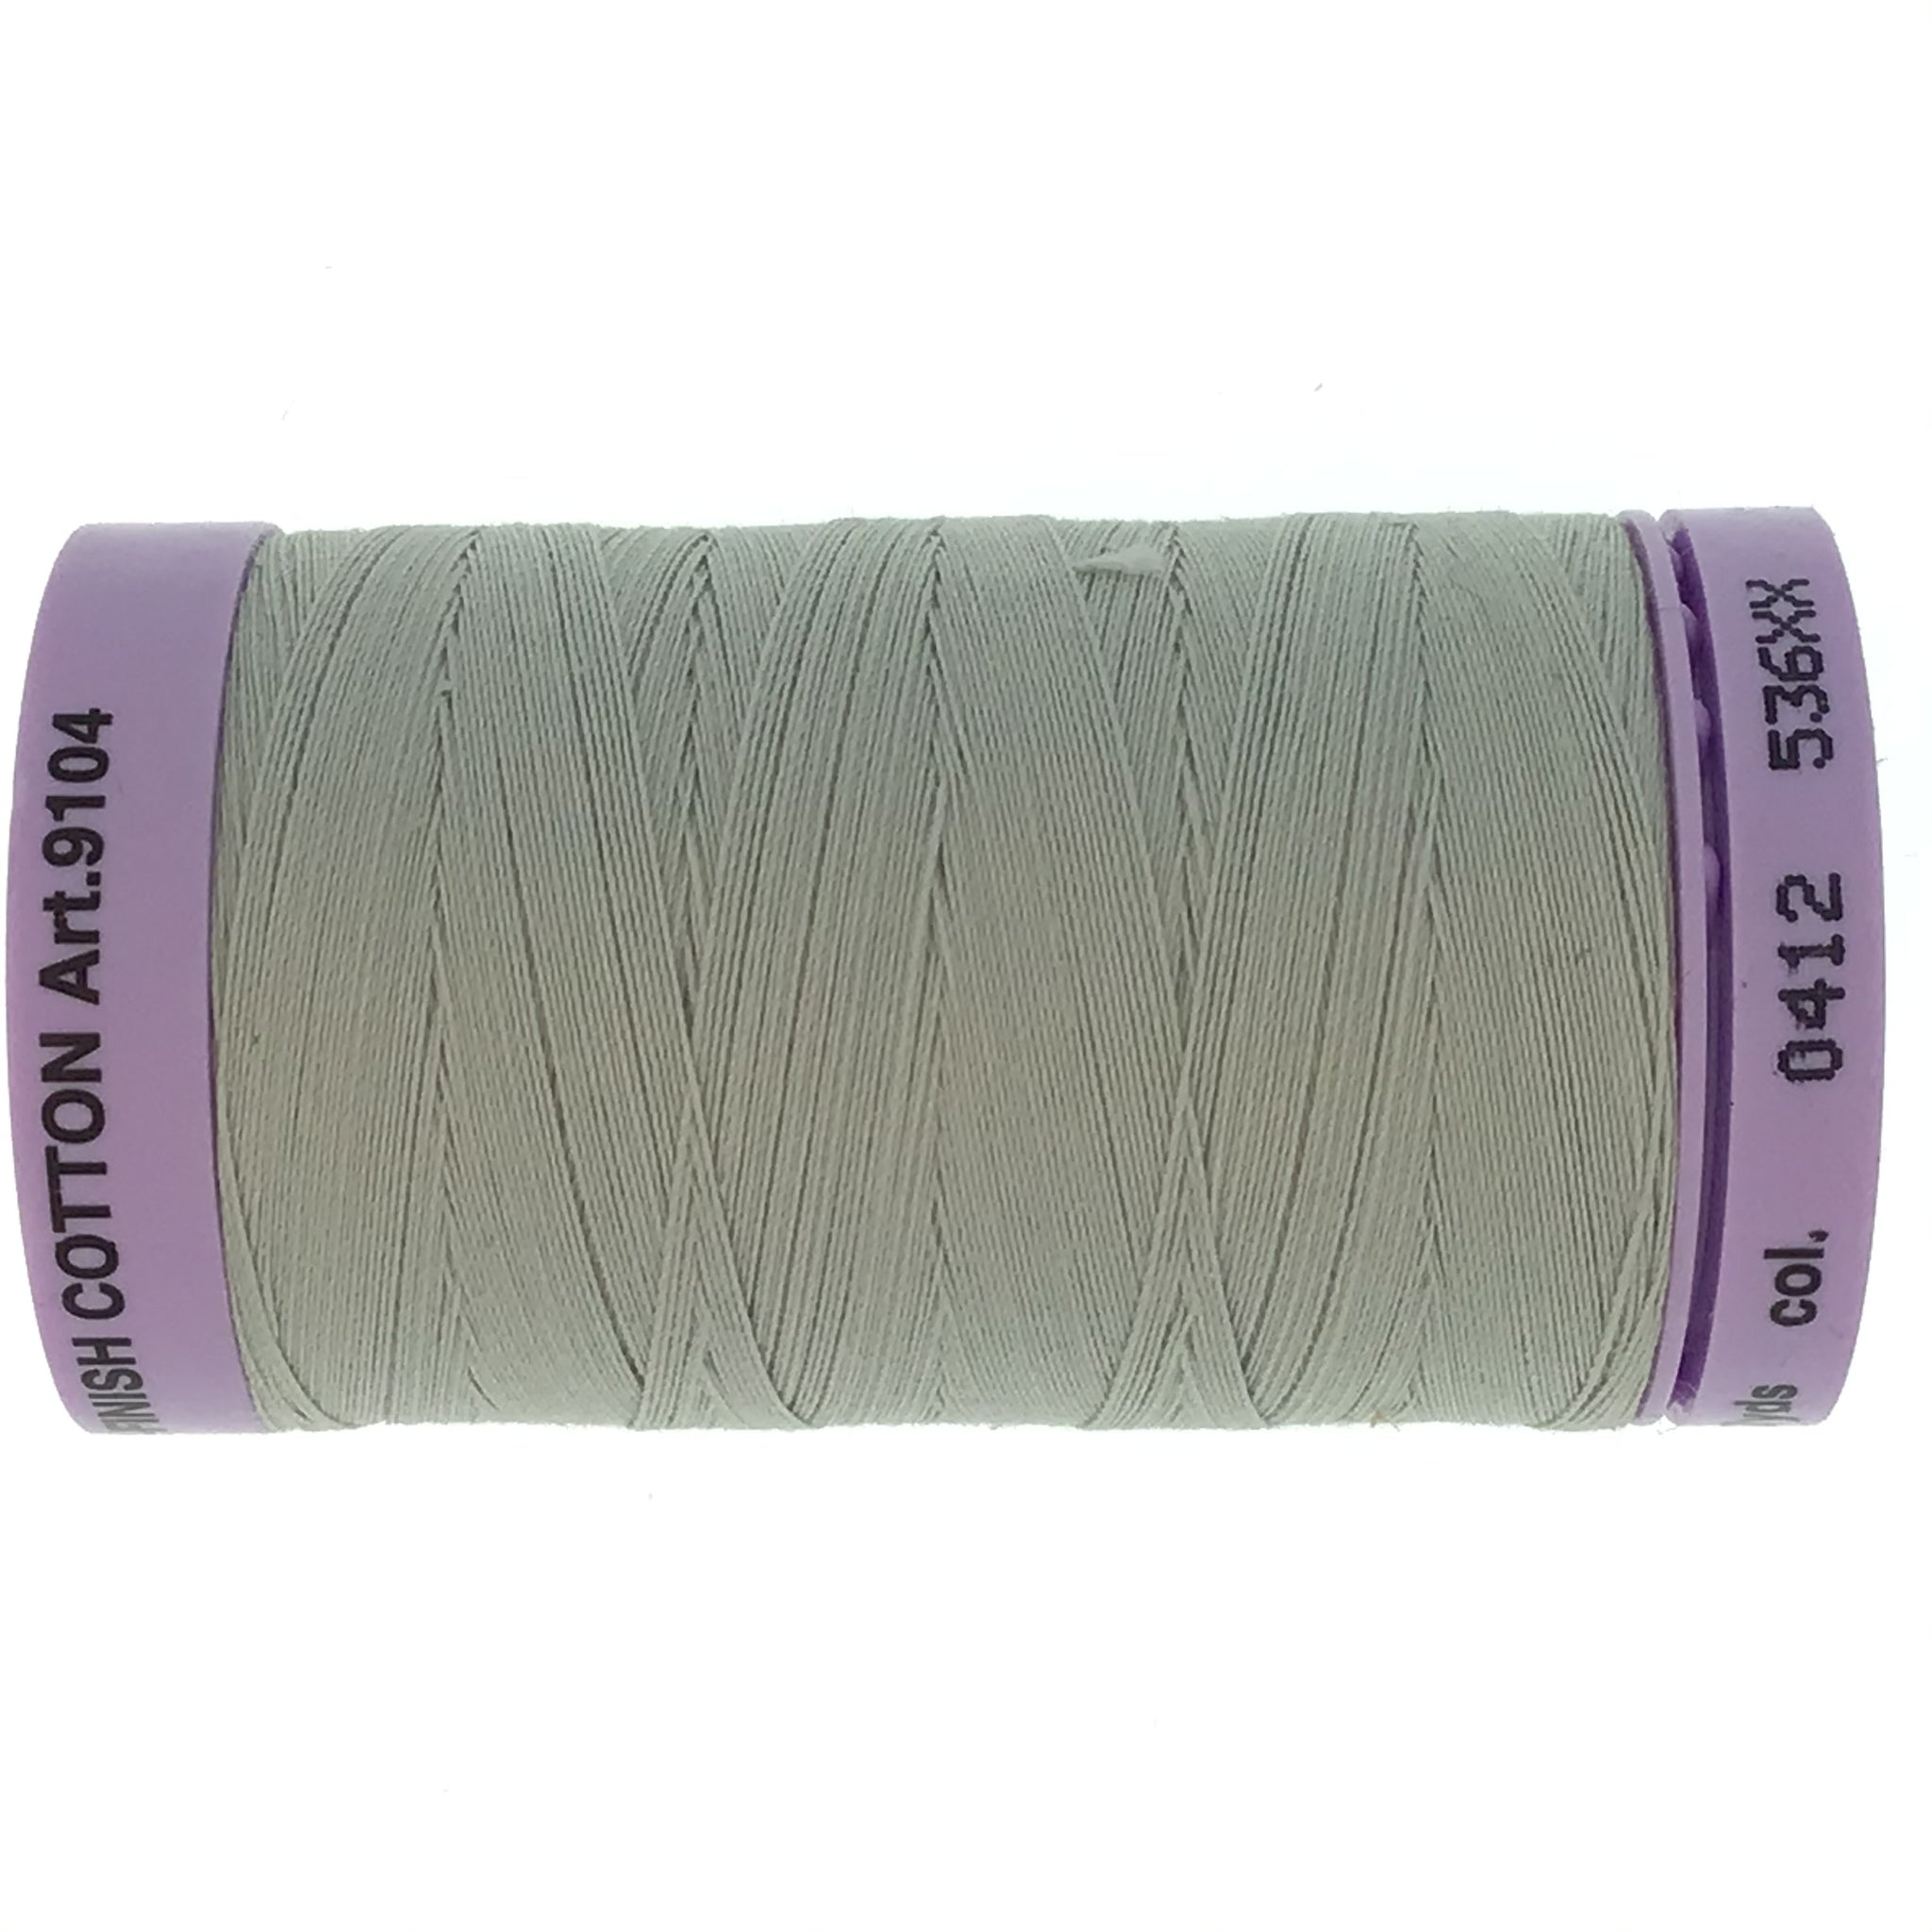 Mettler Cotton 50wt Thread - 500mt - 0412 - Silver Grey